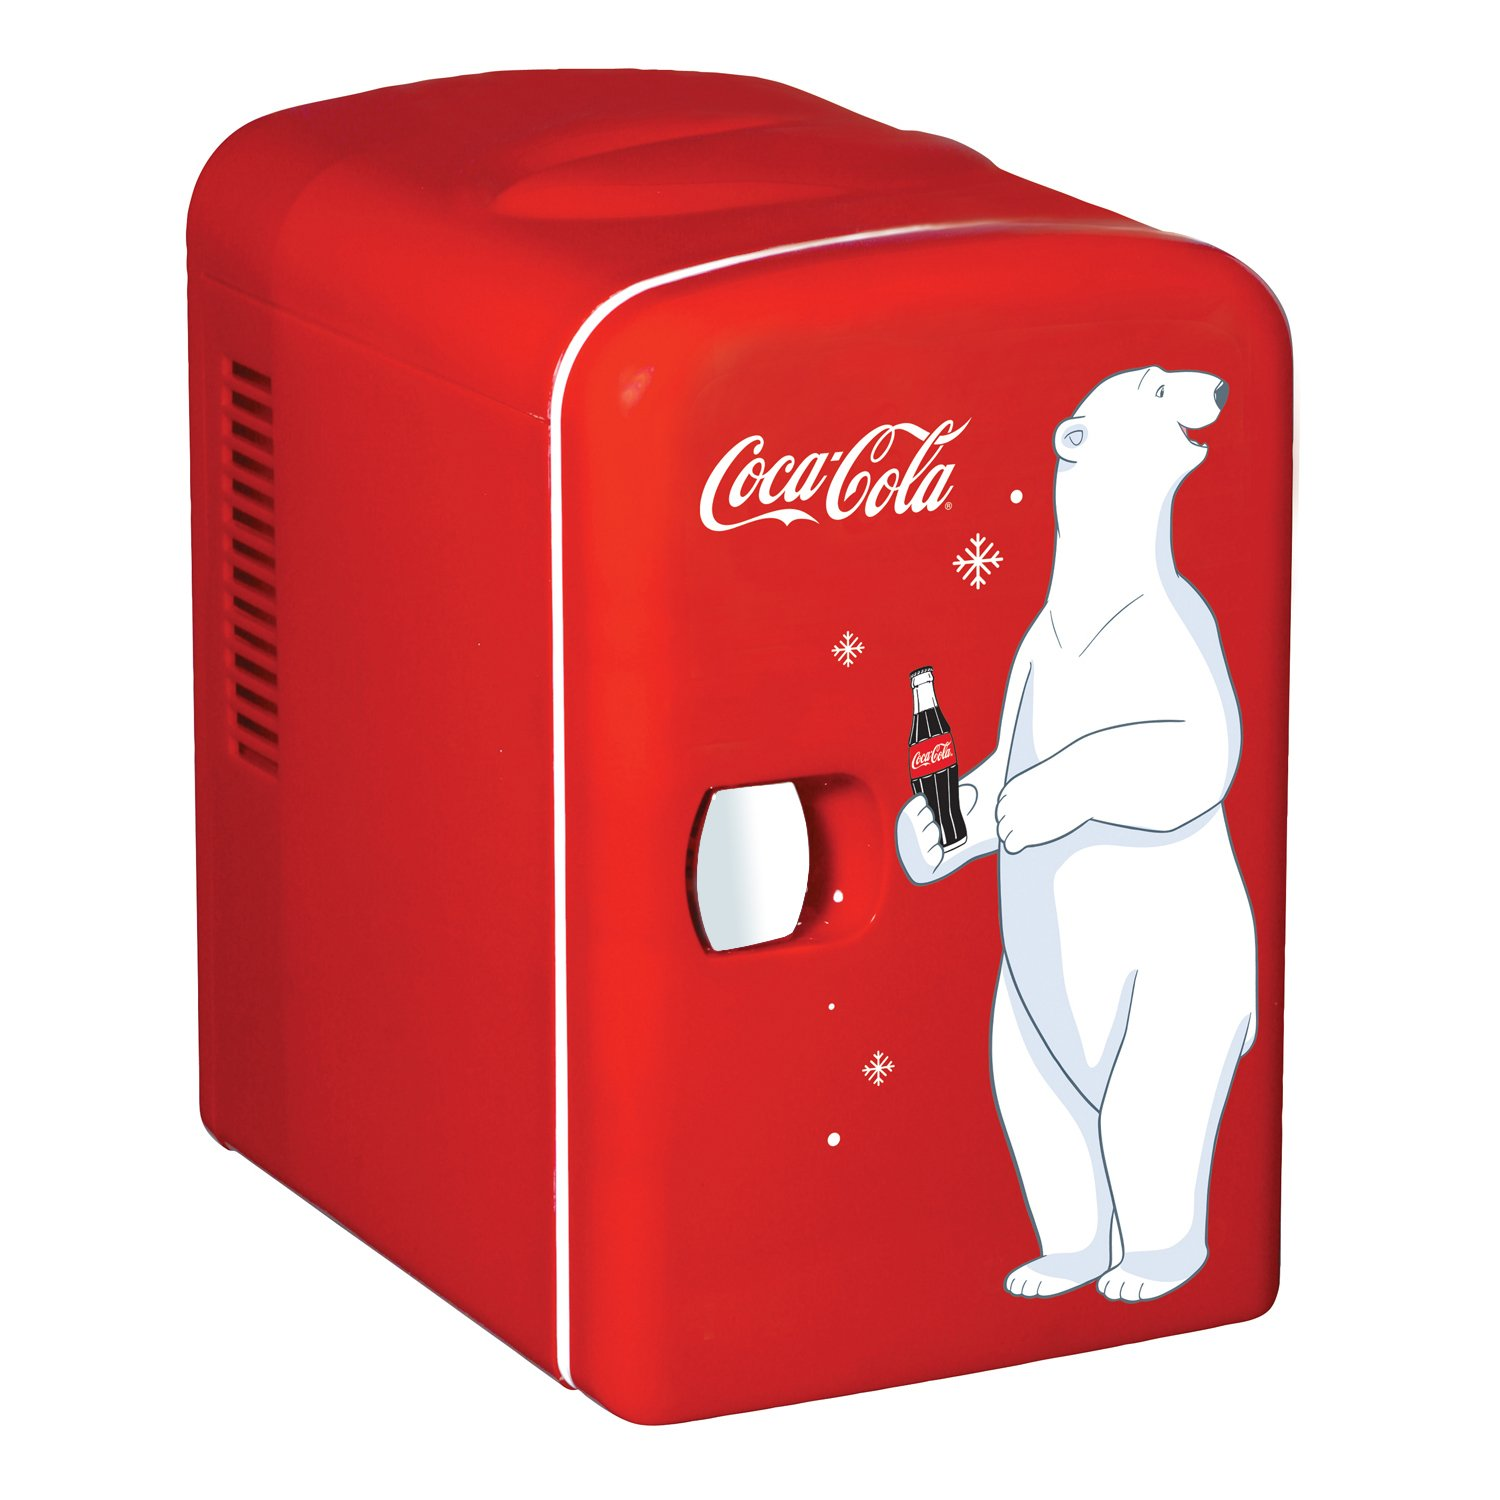 Coca-Cola KWC-4 6-Can Personal Mini 12V DC Car and 110V AC Cooler, Red Koolatron (Kitchen)